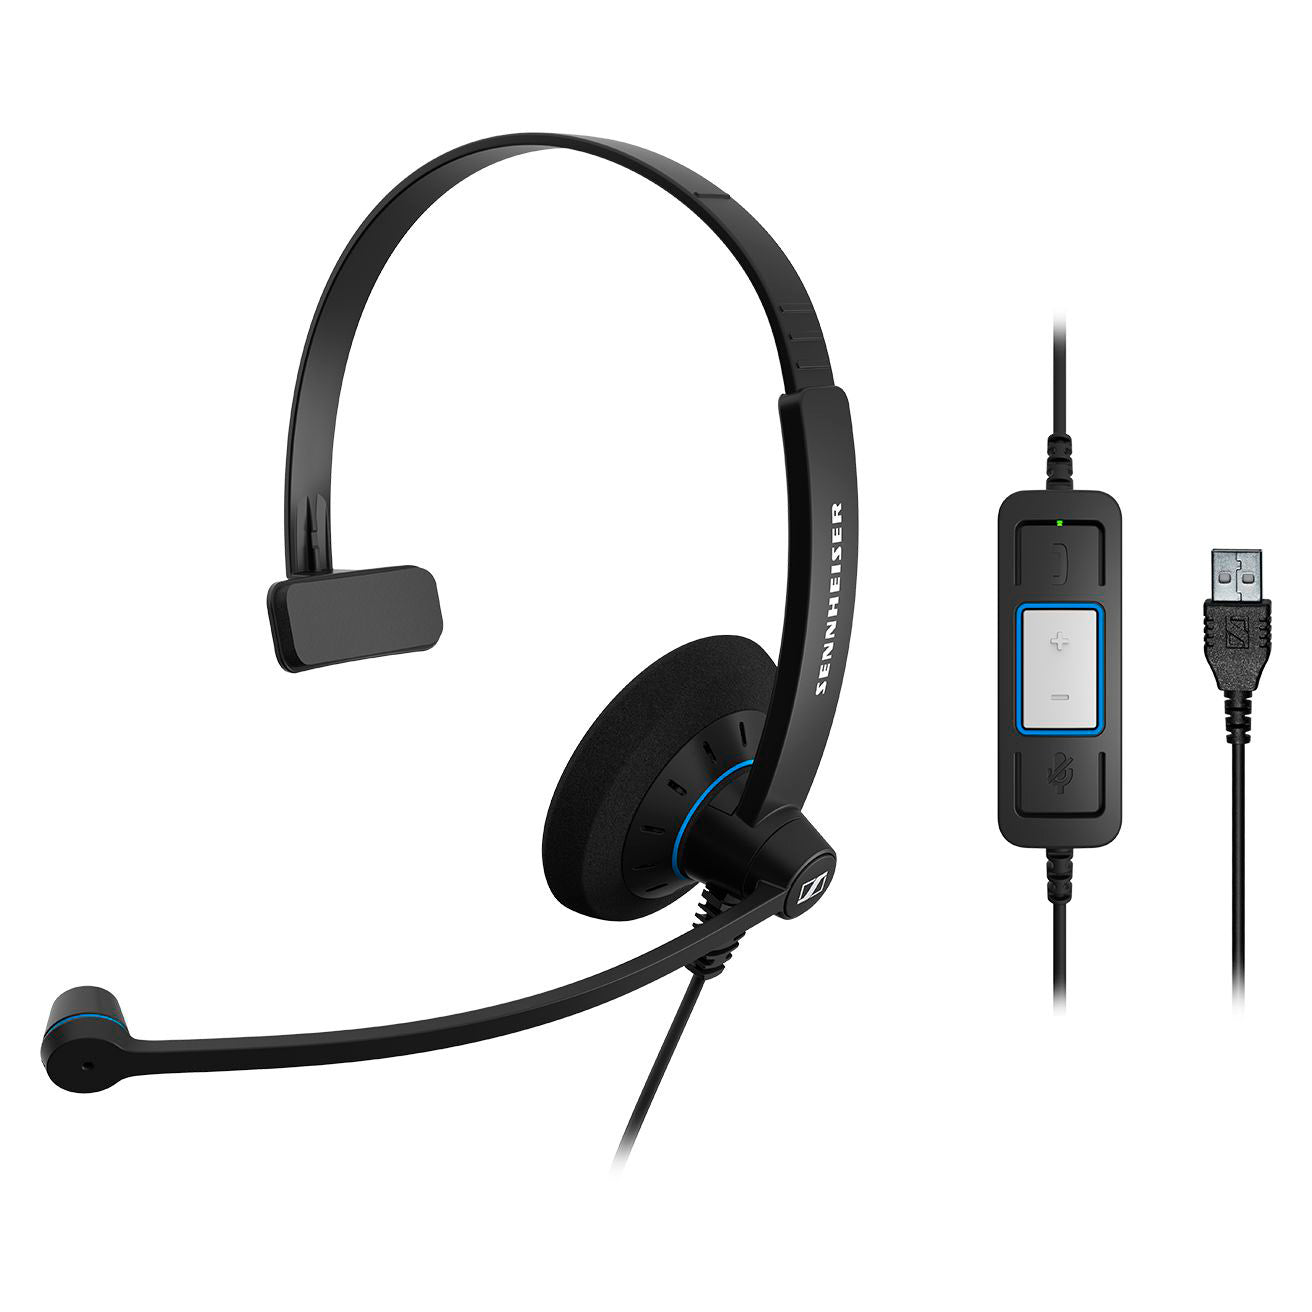 Culture Series Headset - SC30 USB CTRL